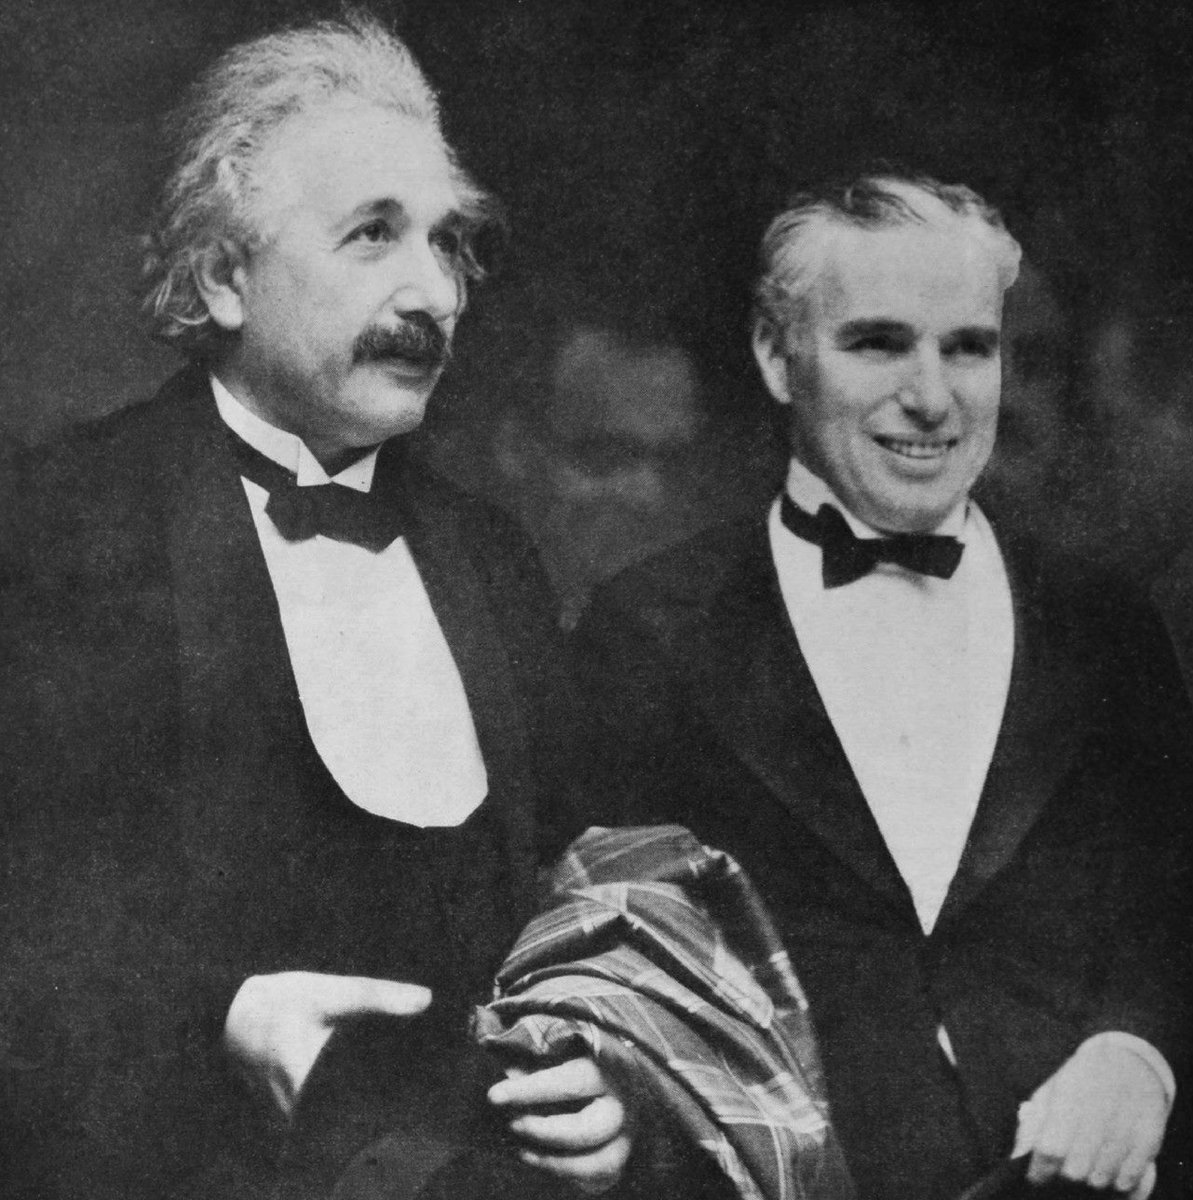 When Albert met Charlie:  Einstein: What I most admire about your art, is your universality. You don't say a word, yet the world understands you!  Chaplin: True. But your glory is even greater! The whole world admires you, even though they don't understand a word of what you say